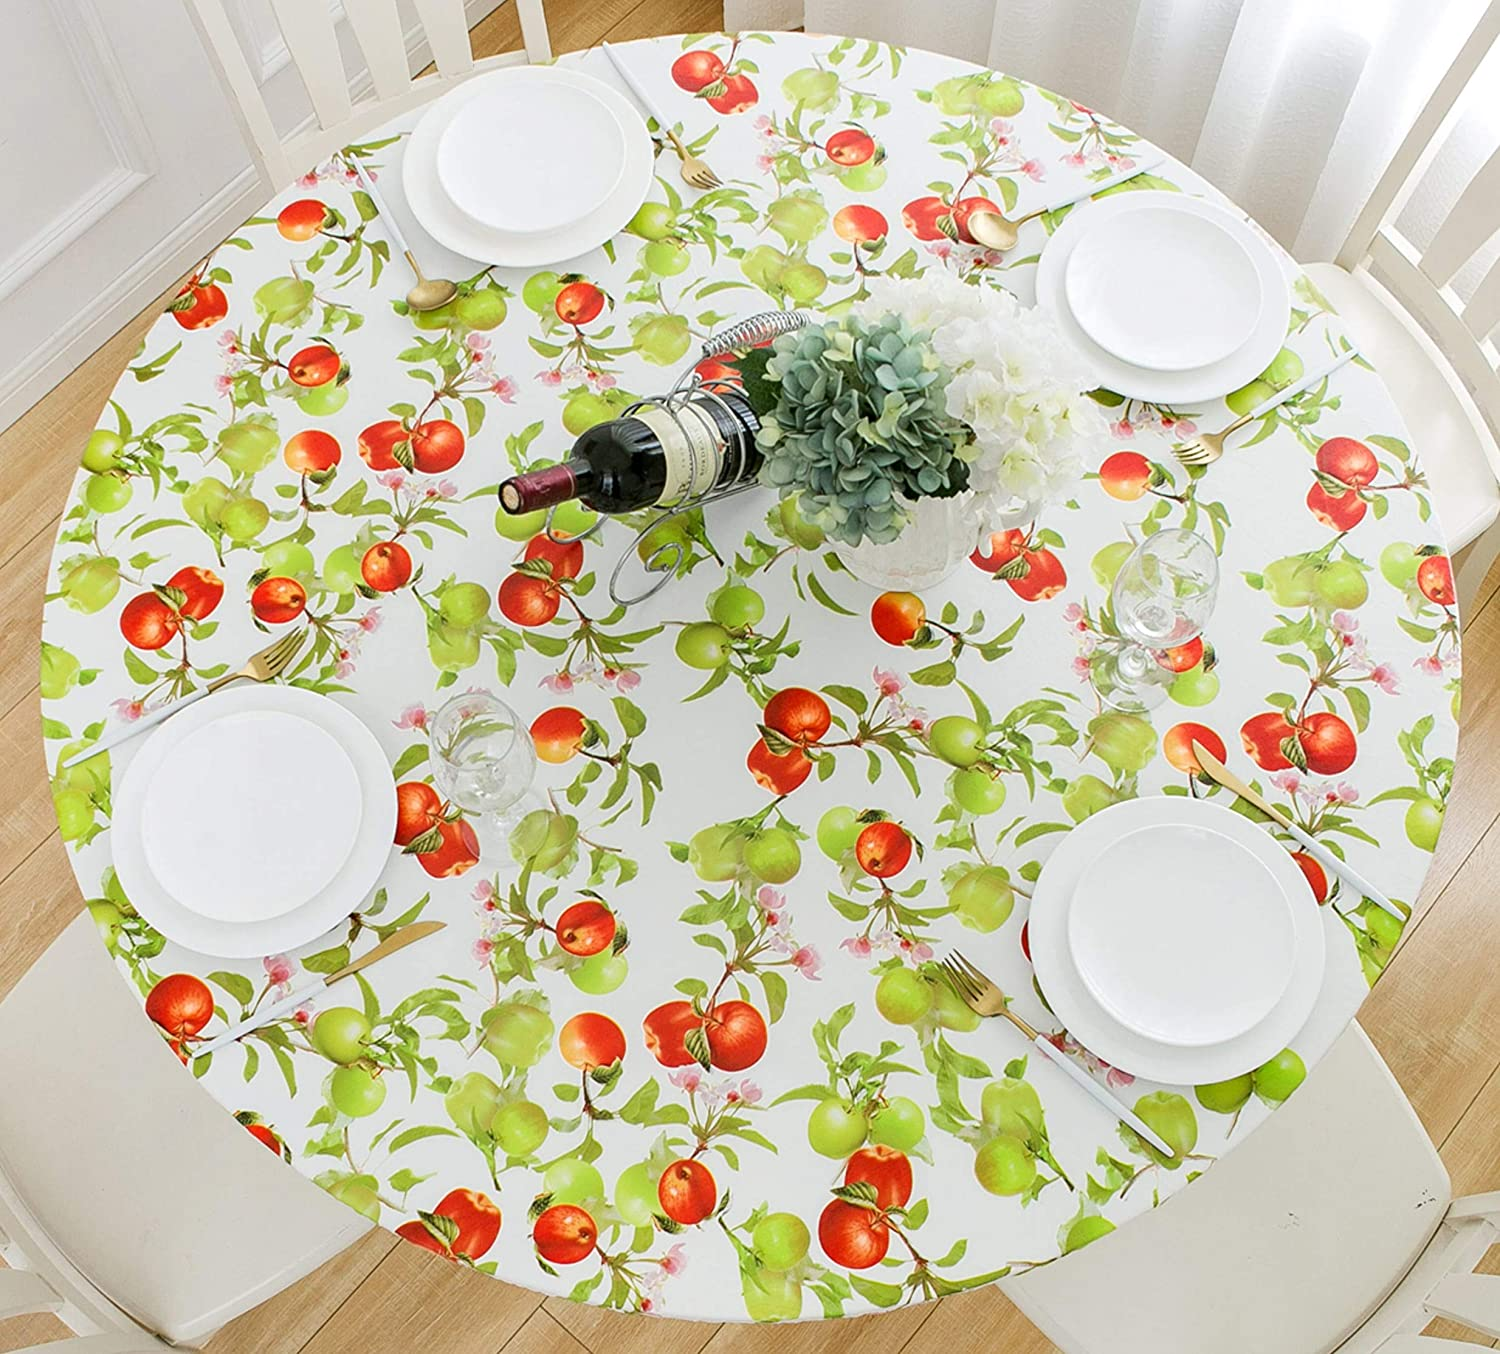 Rally Home Goods Indoor Outdoor Patio Round Fitted Vinyl Tablecloth, Flannel Backing, Elastic Edge, Waterproof Wipeable Plastic Cover, Apples Fruits Pattern for 5-Seat Table of 36-44'' Diameter